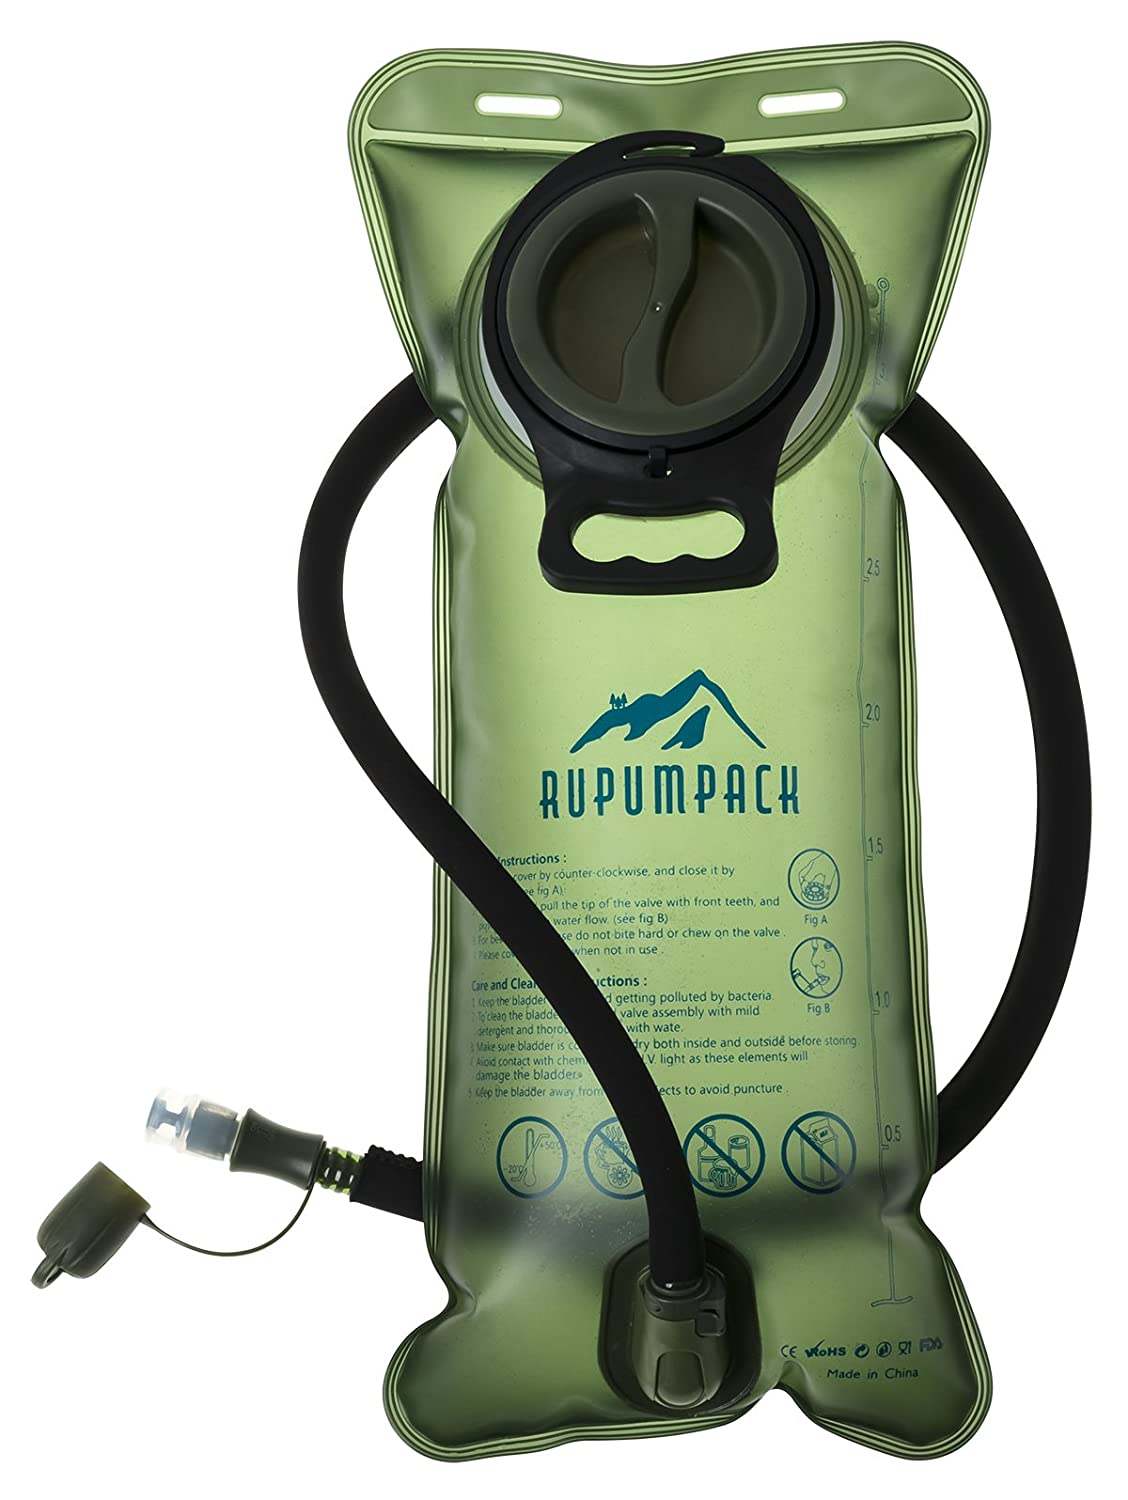 RUPUMPACK Water Bladder Leak Proof BPA Free Hydration Bladder 3 Liter 3L 100oz Bicycling Hiking Camping Backpack/Gear, Quick Release Insulated Tube, Non Toxic Easy Clean Wide Opening …